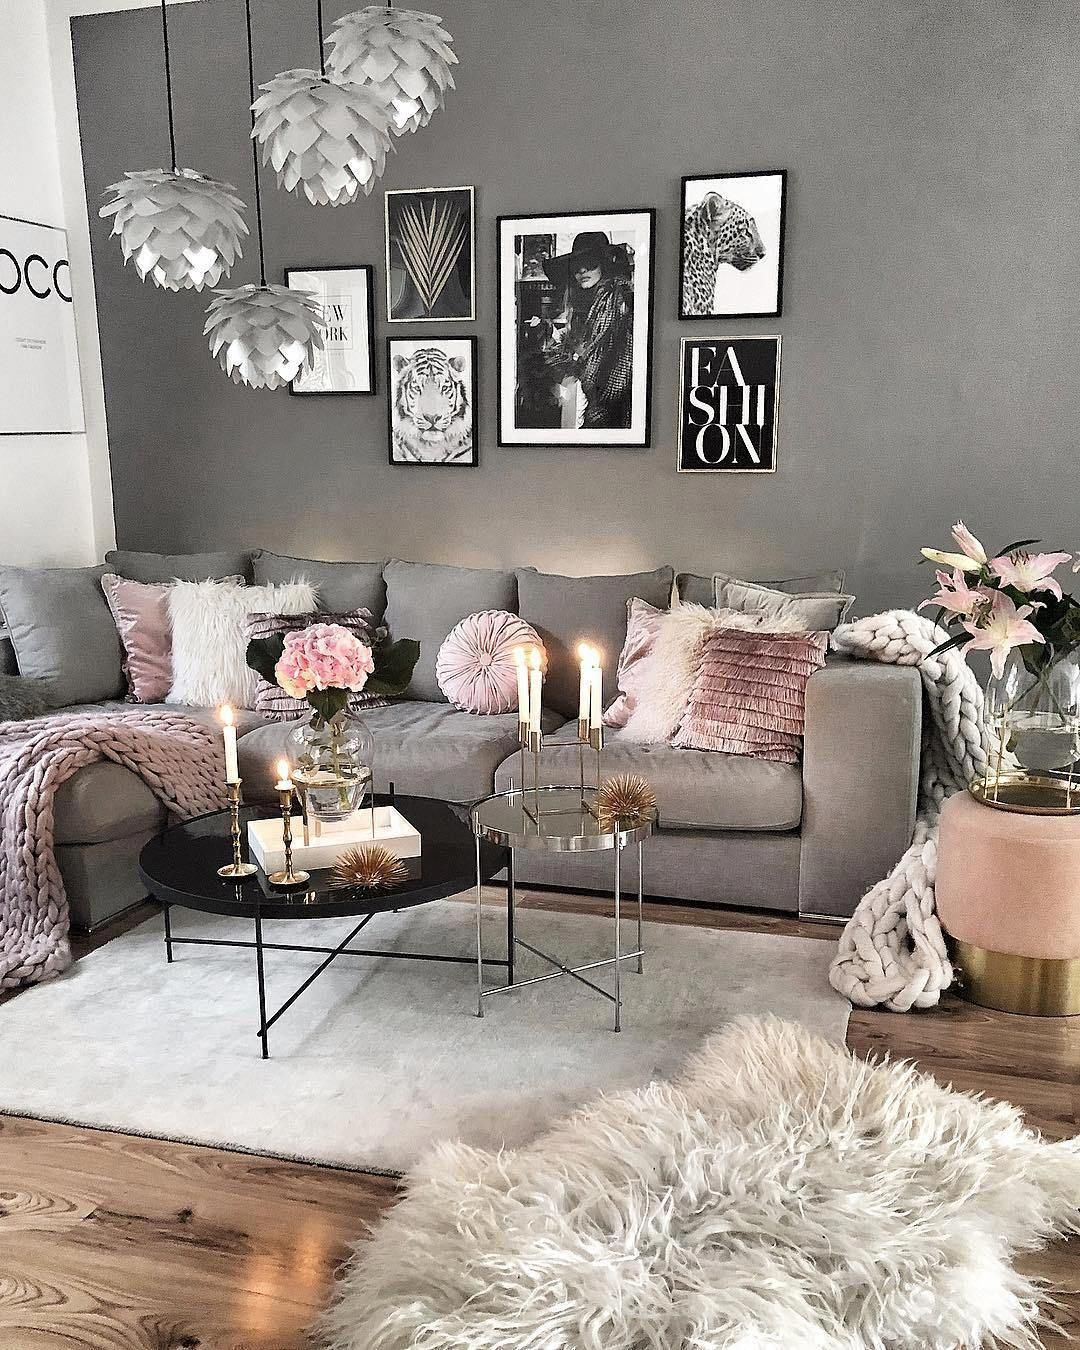 Recreate This Grey And Pink Cozy Living Room Decor Livingroom Decor Homedecor Living Room Decor Cozy Pink Living Room Luxury Room Decor